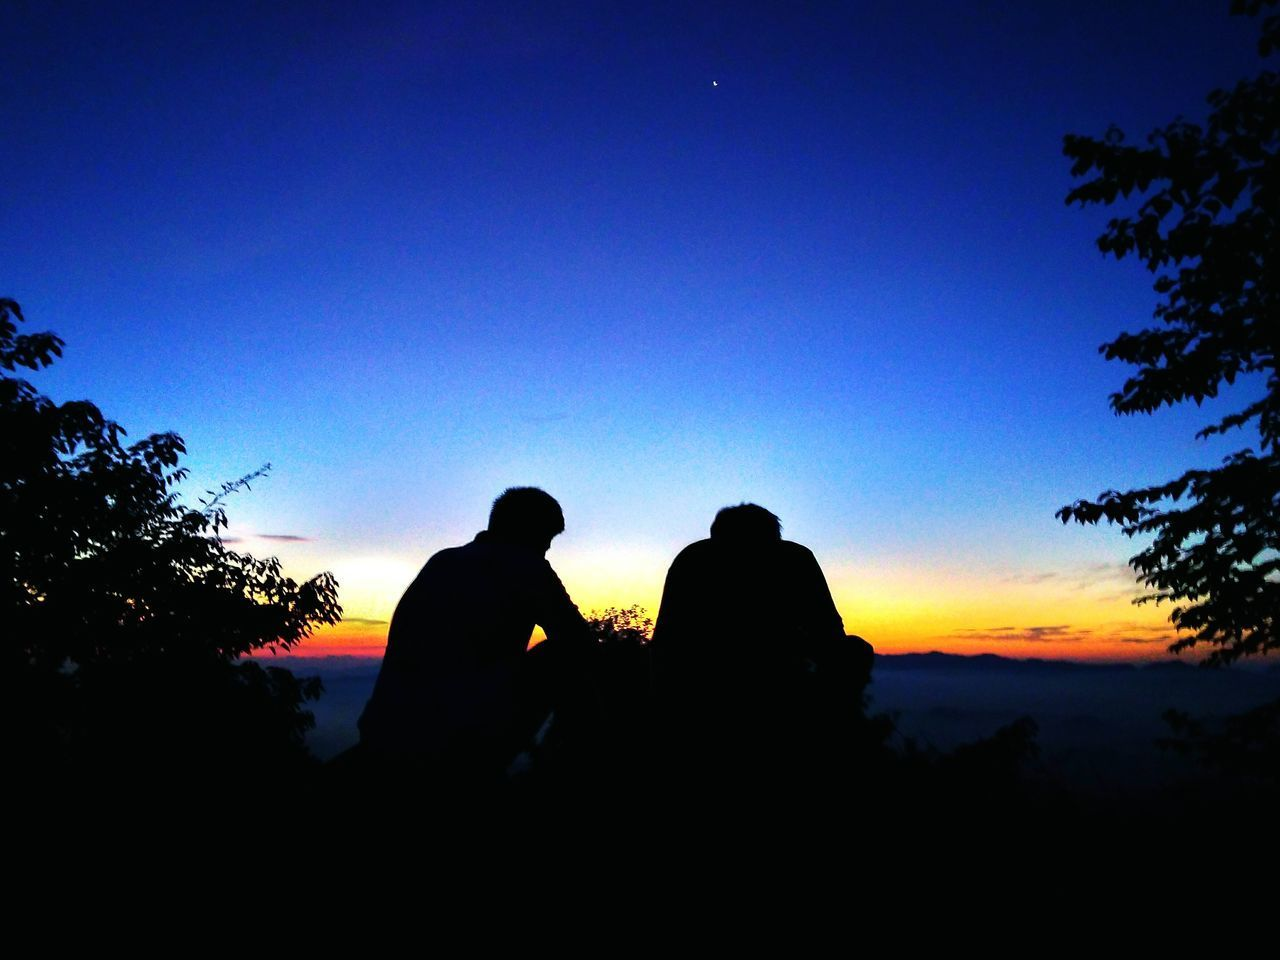 silhouette, two people, togetherness, love, clear sky, real people, men, sunset, sky, bonding, nature, leisure activity, beauty in nature, outdoors, low angle view, tree, scenics, blue, sitting, women, day, friendship, people